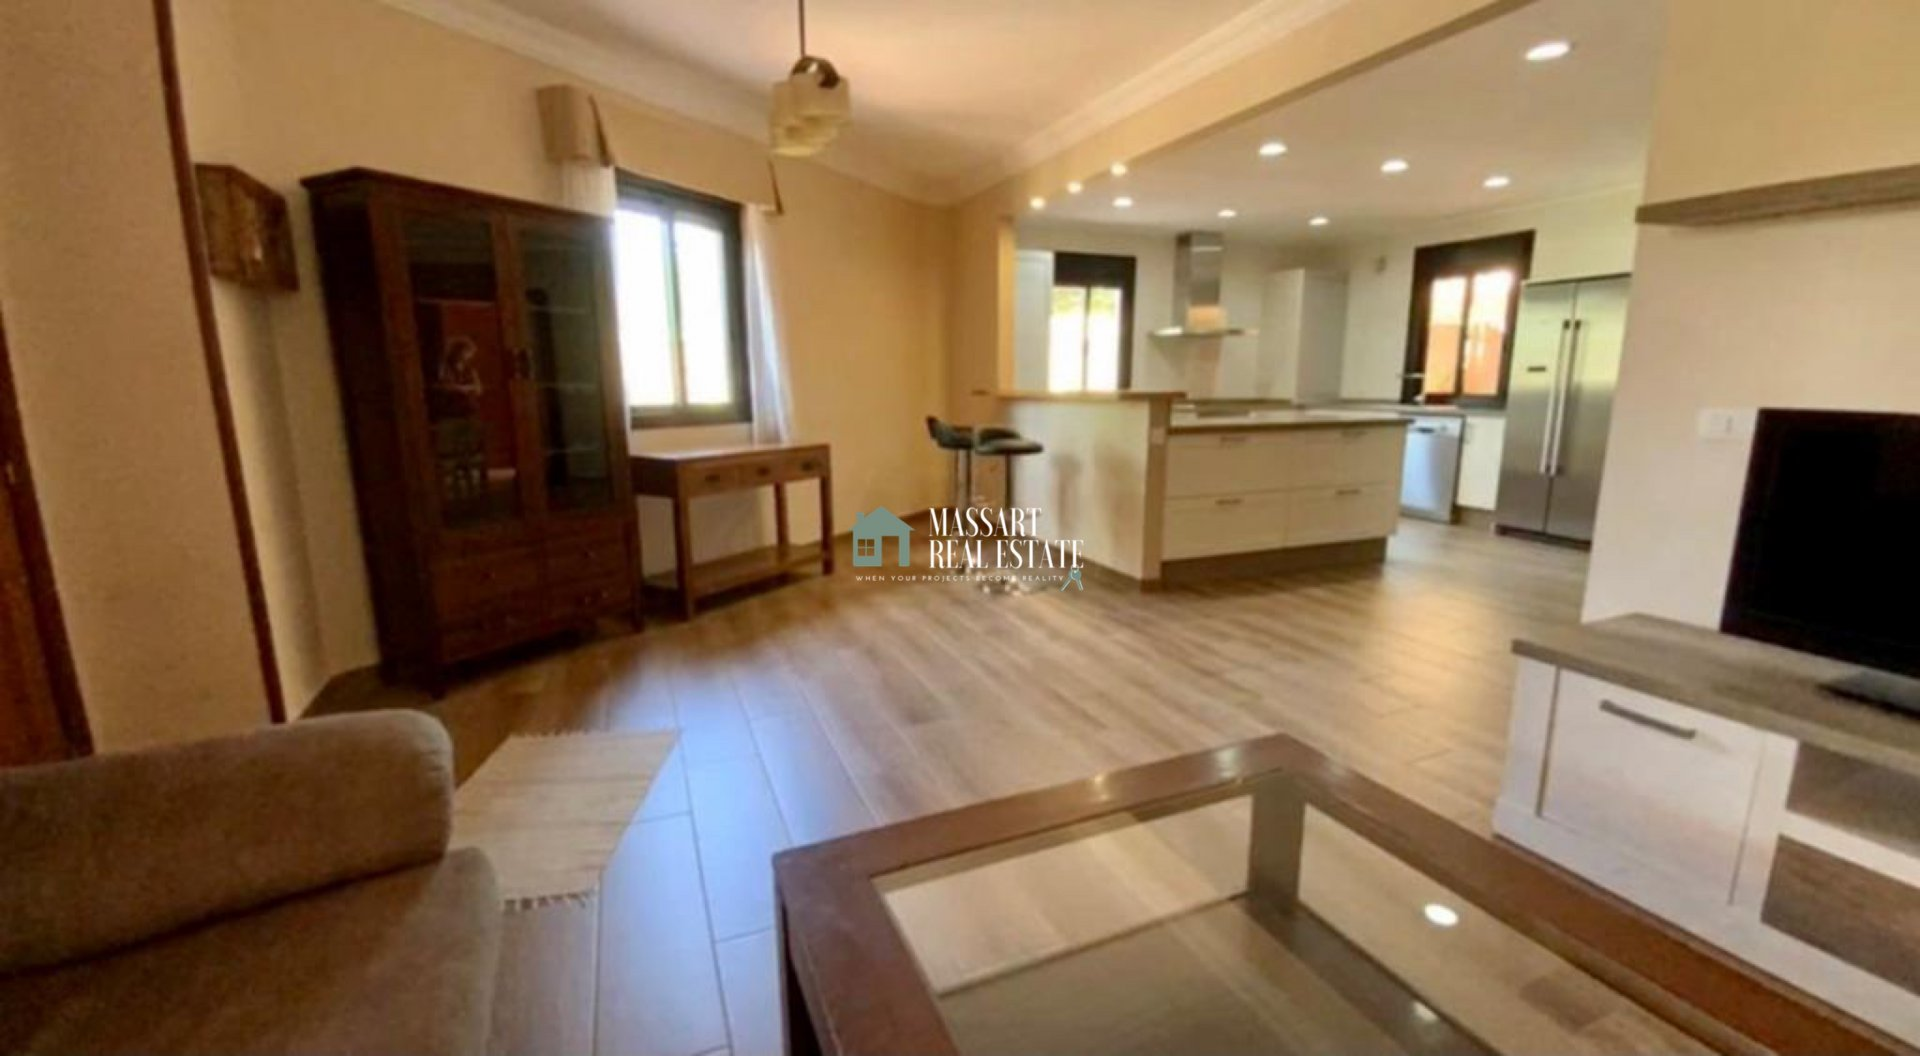 For rent in a central area of Adeje, in La Goleta residential complex, apartment with high added value for its wonderful 175 m2 terrace.